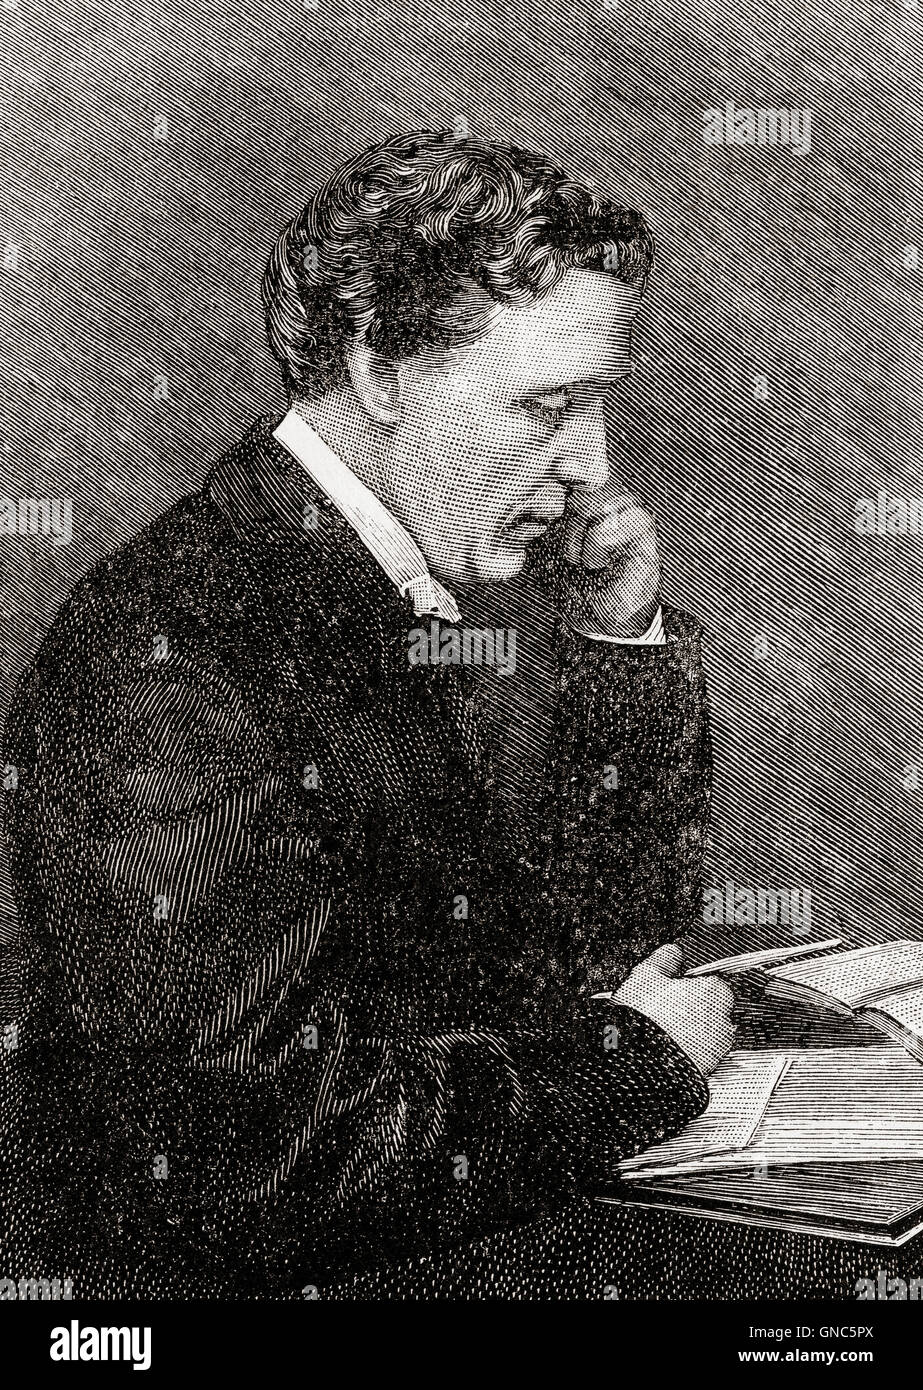 Charles Lutwidge Dodgson, 1832 – 1898, better known by his pen name Lewis Carroll.  English writer, mathematician, - Stock Image